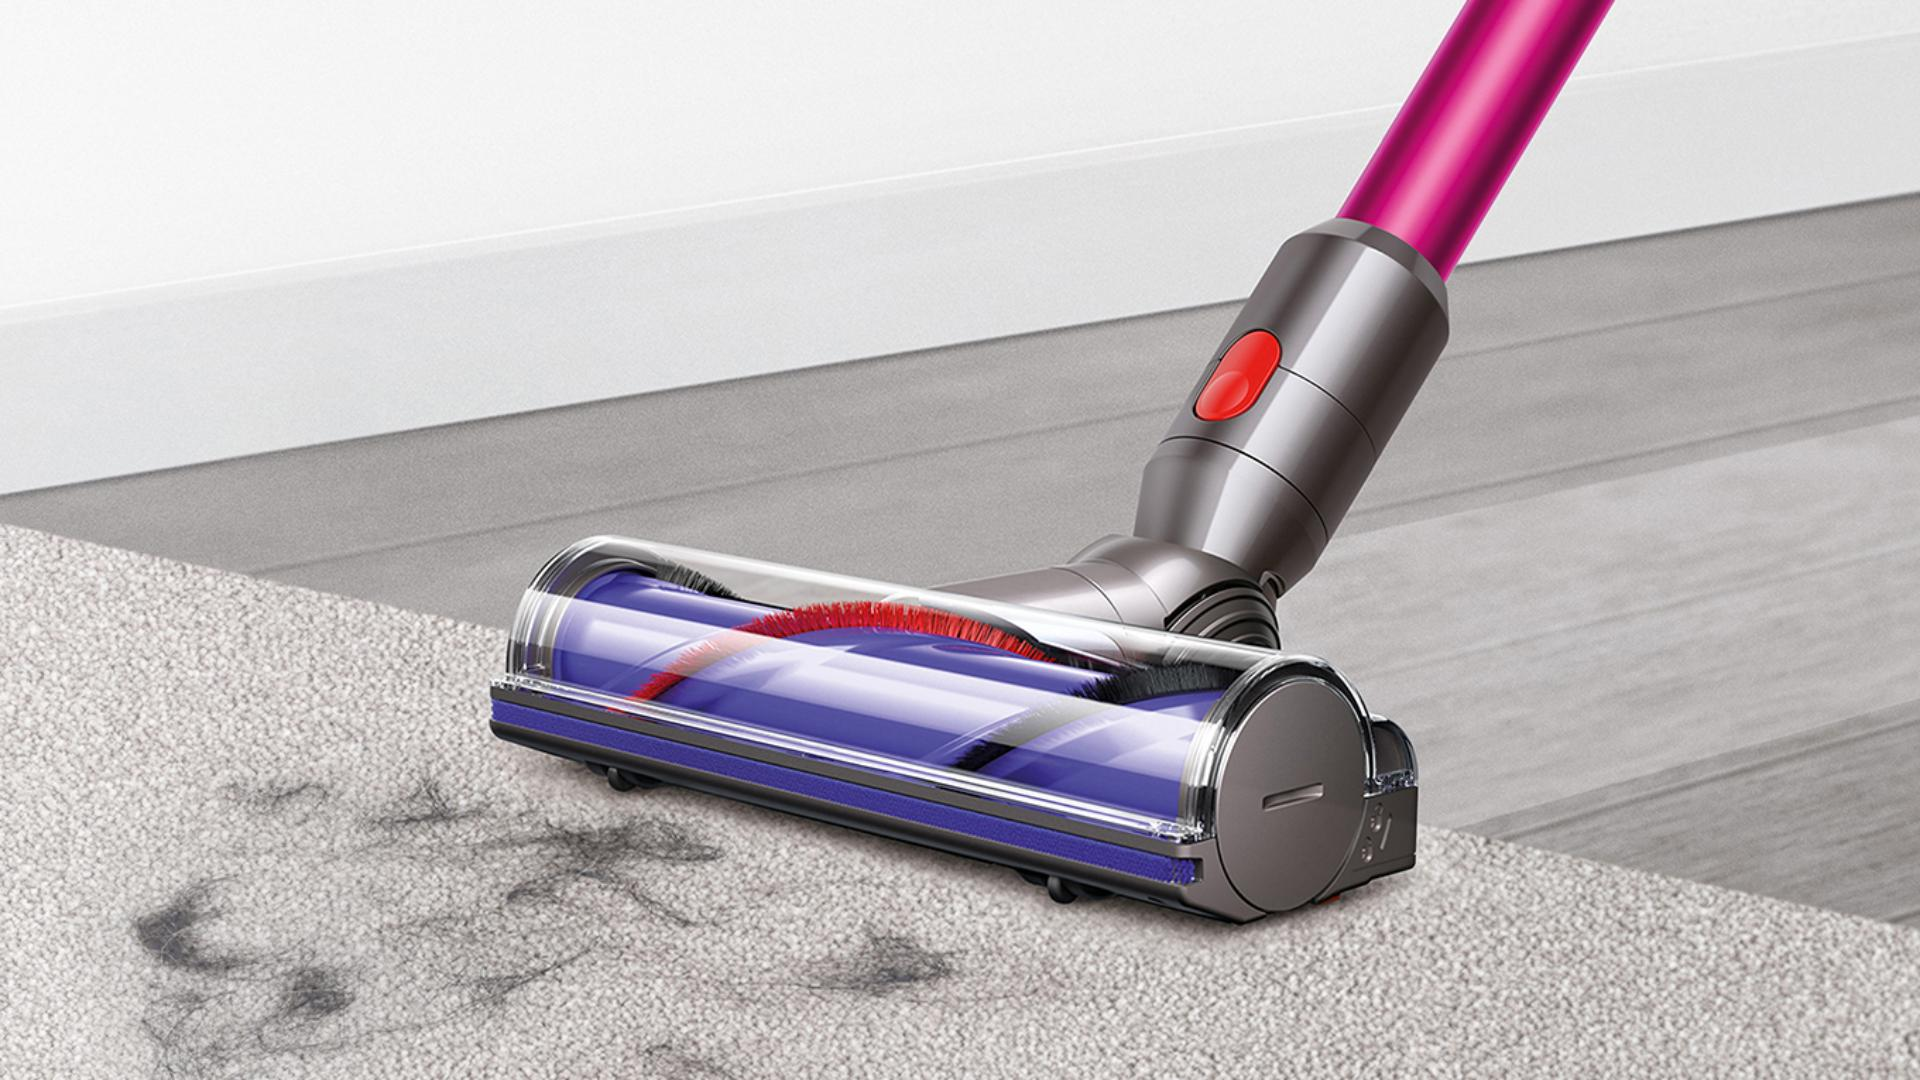 Direct drive cleaner head cleaning across carpet and hard floor.